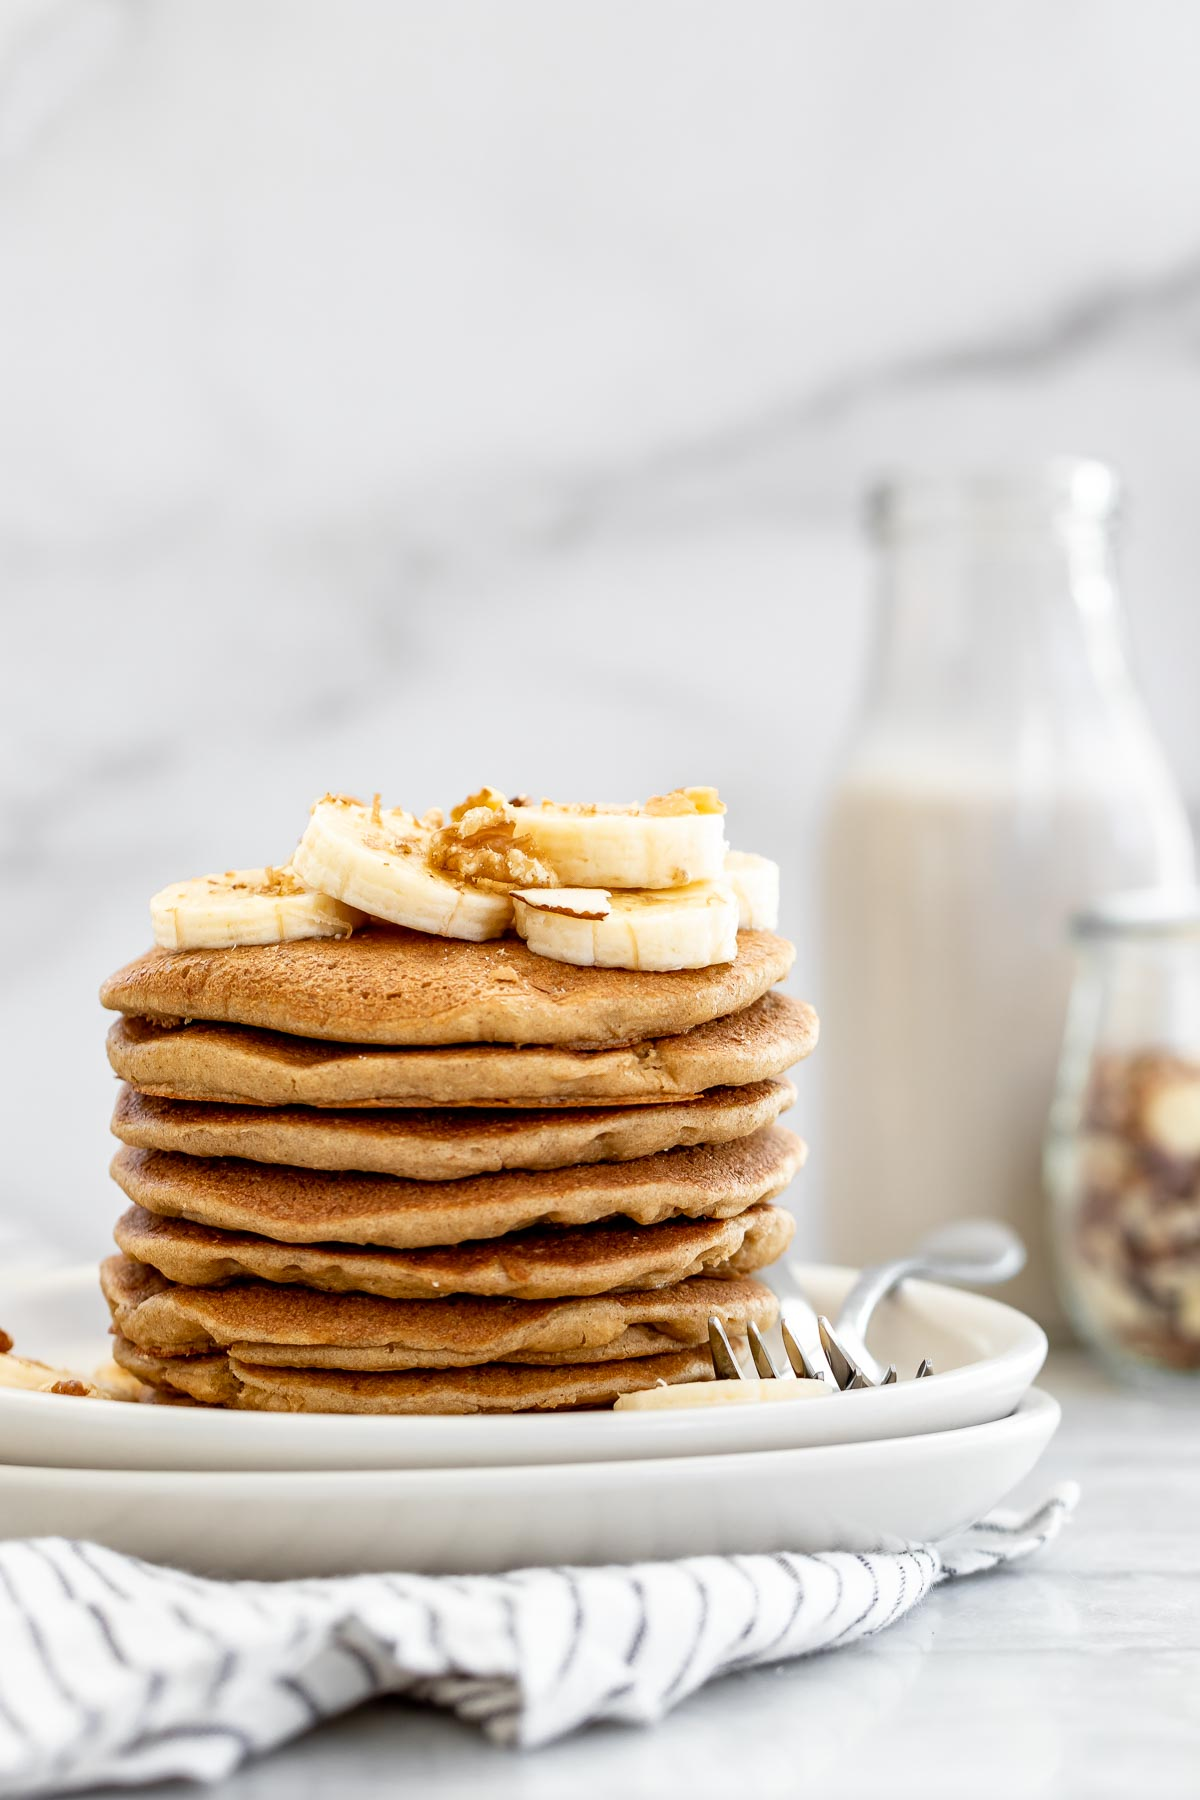 Gluten free banana pancakes with banana slices on top.